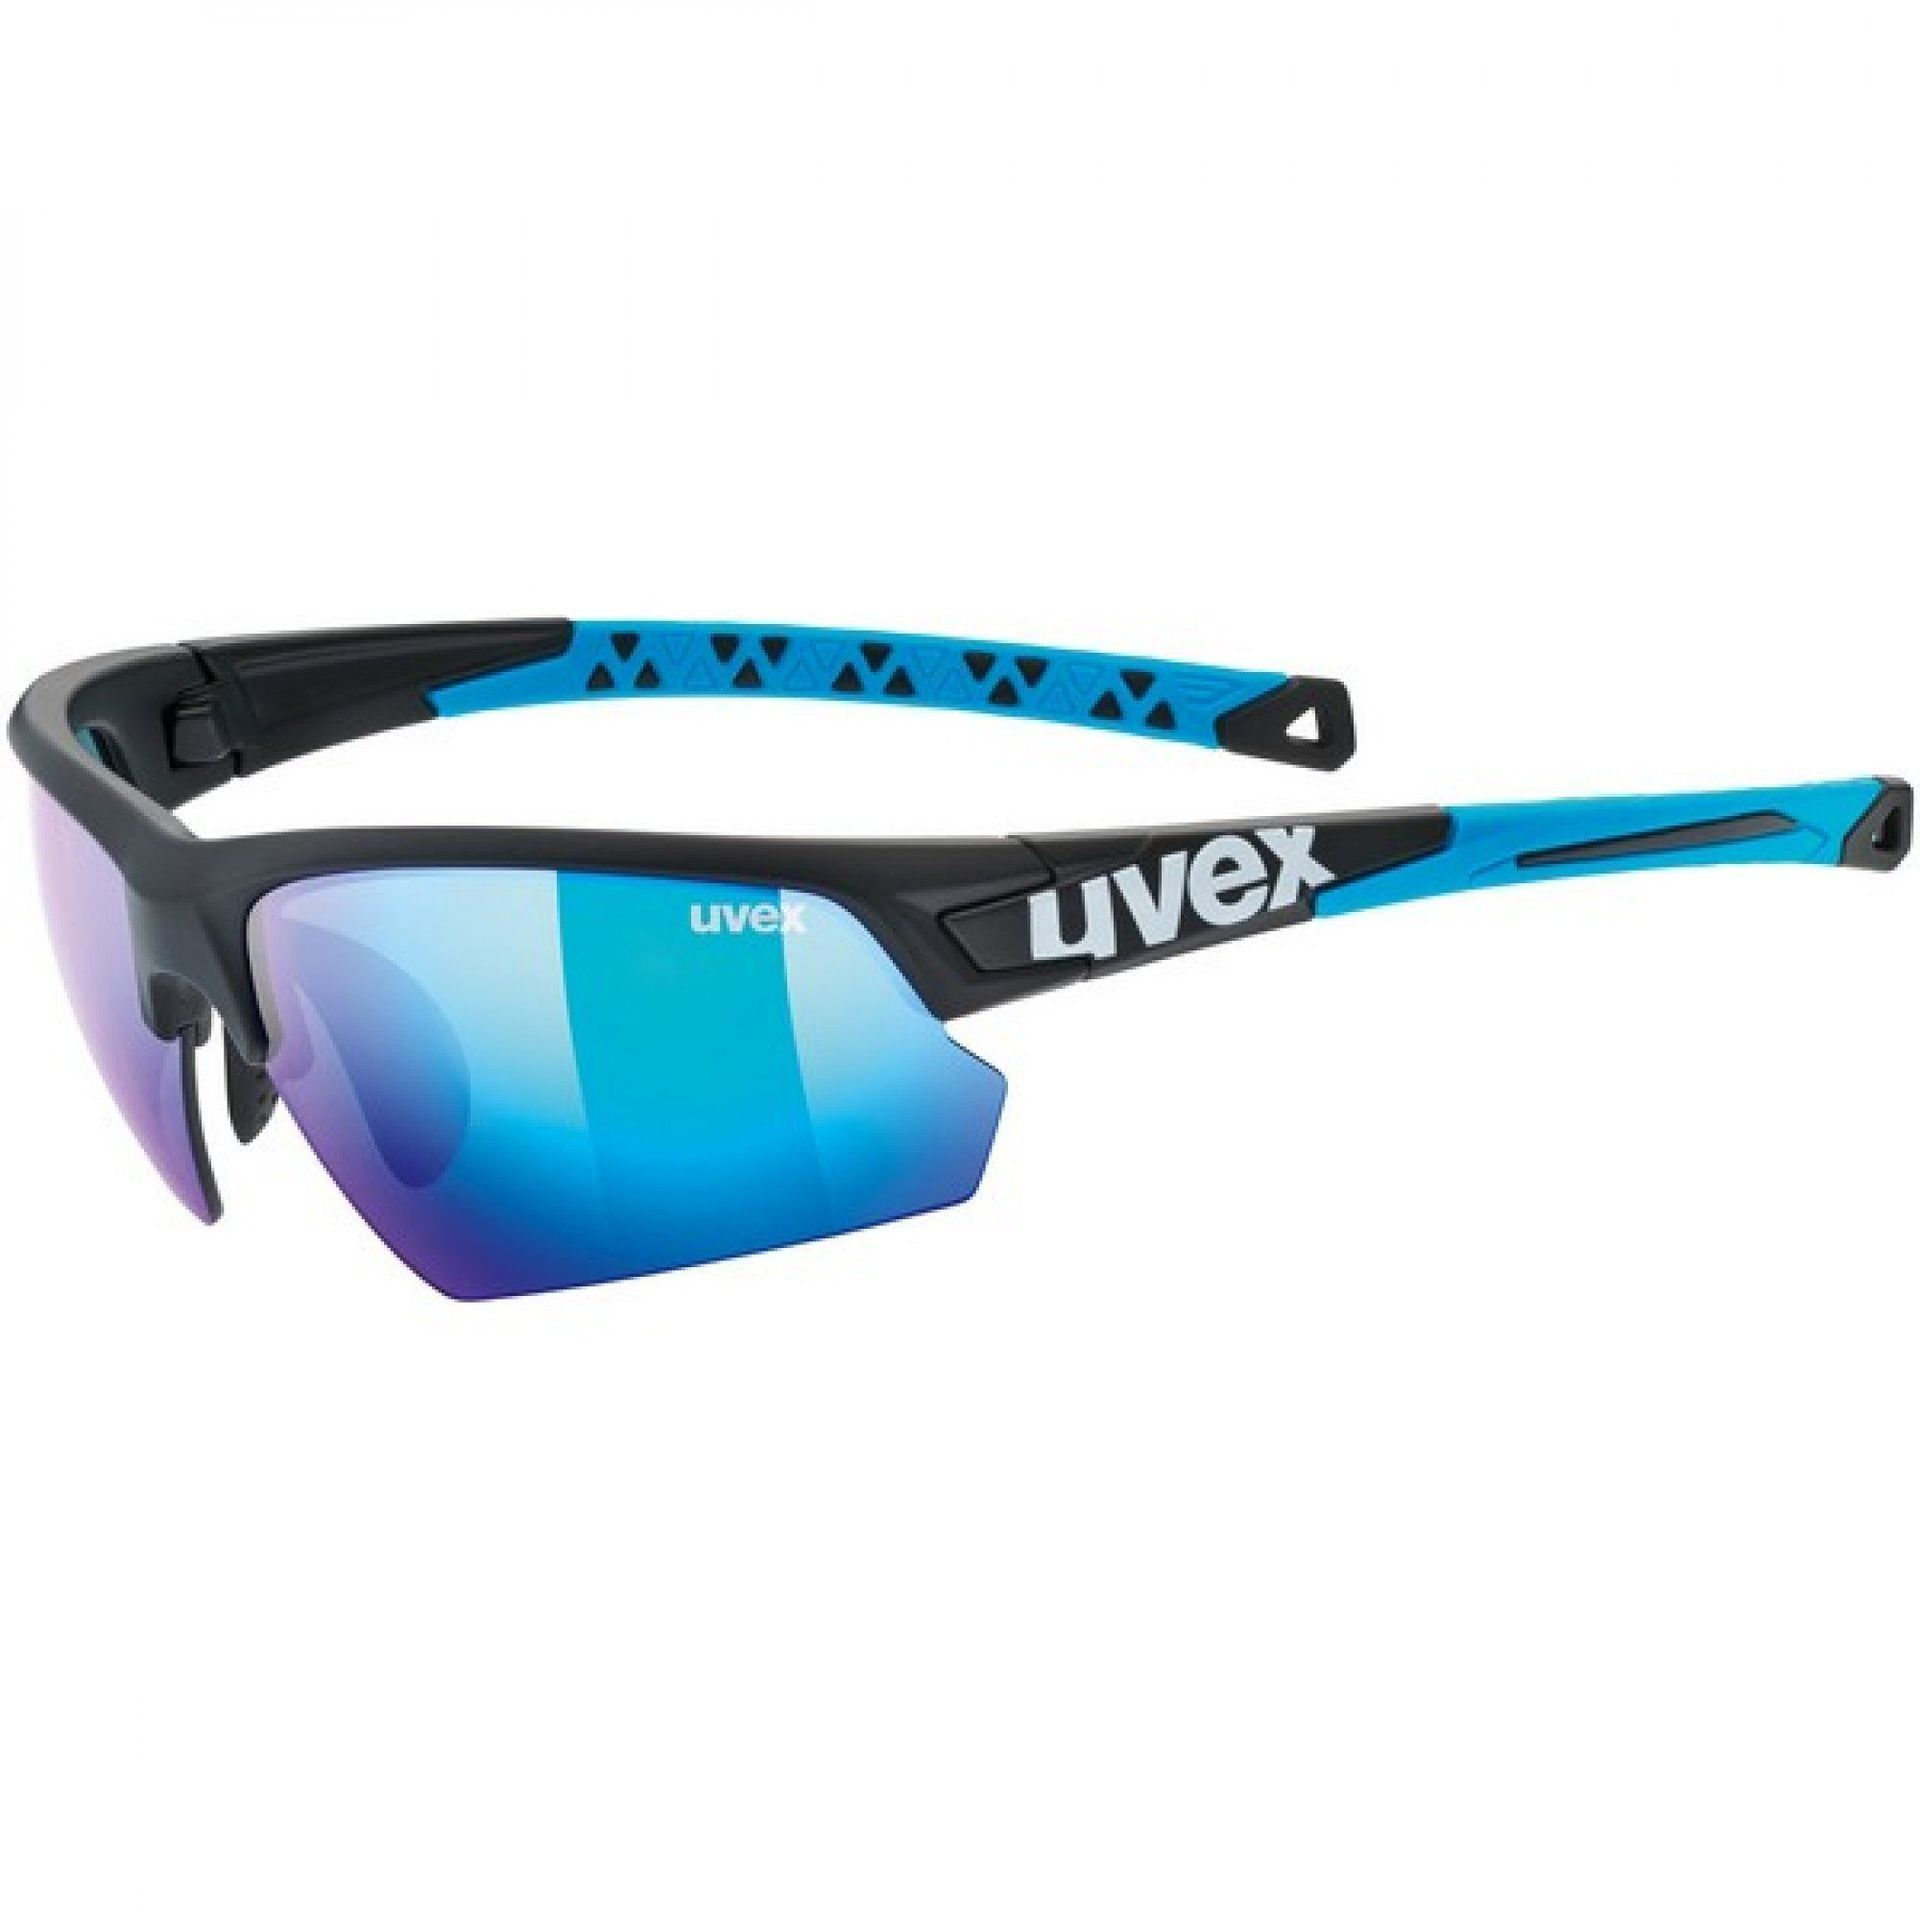 OKULARY UVEX SPORTSTYLE 224 2416 BLACK MAT BLUE